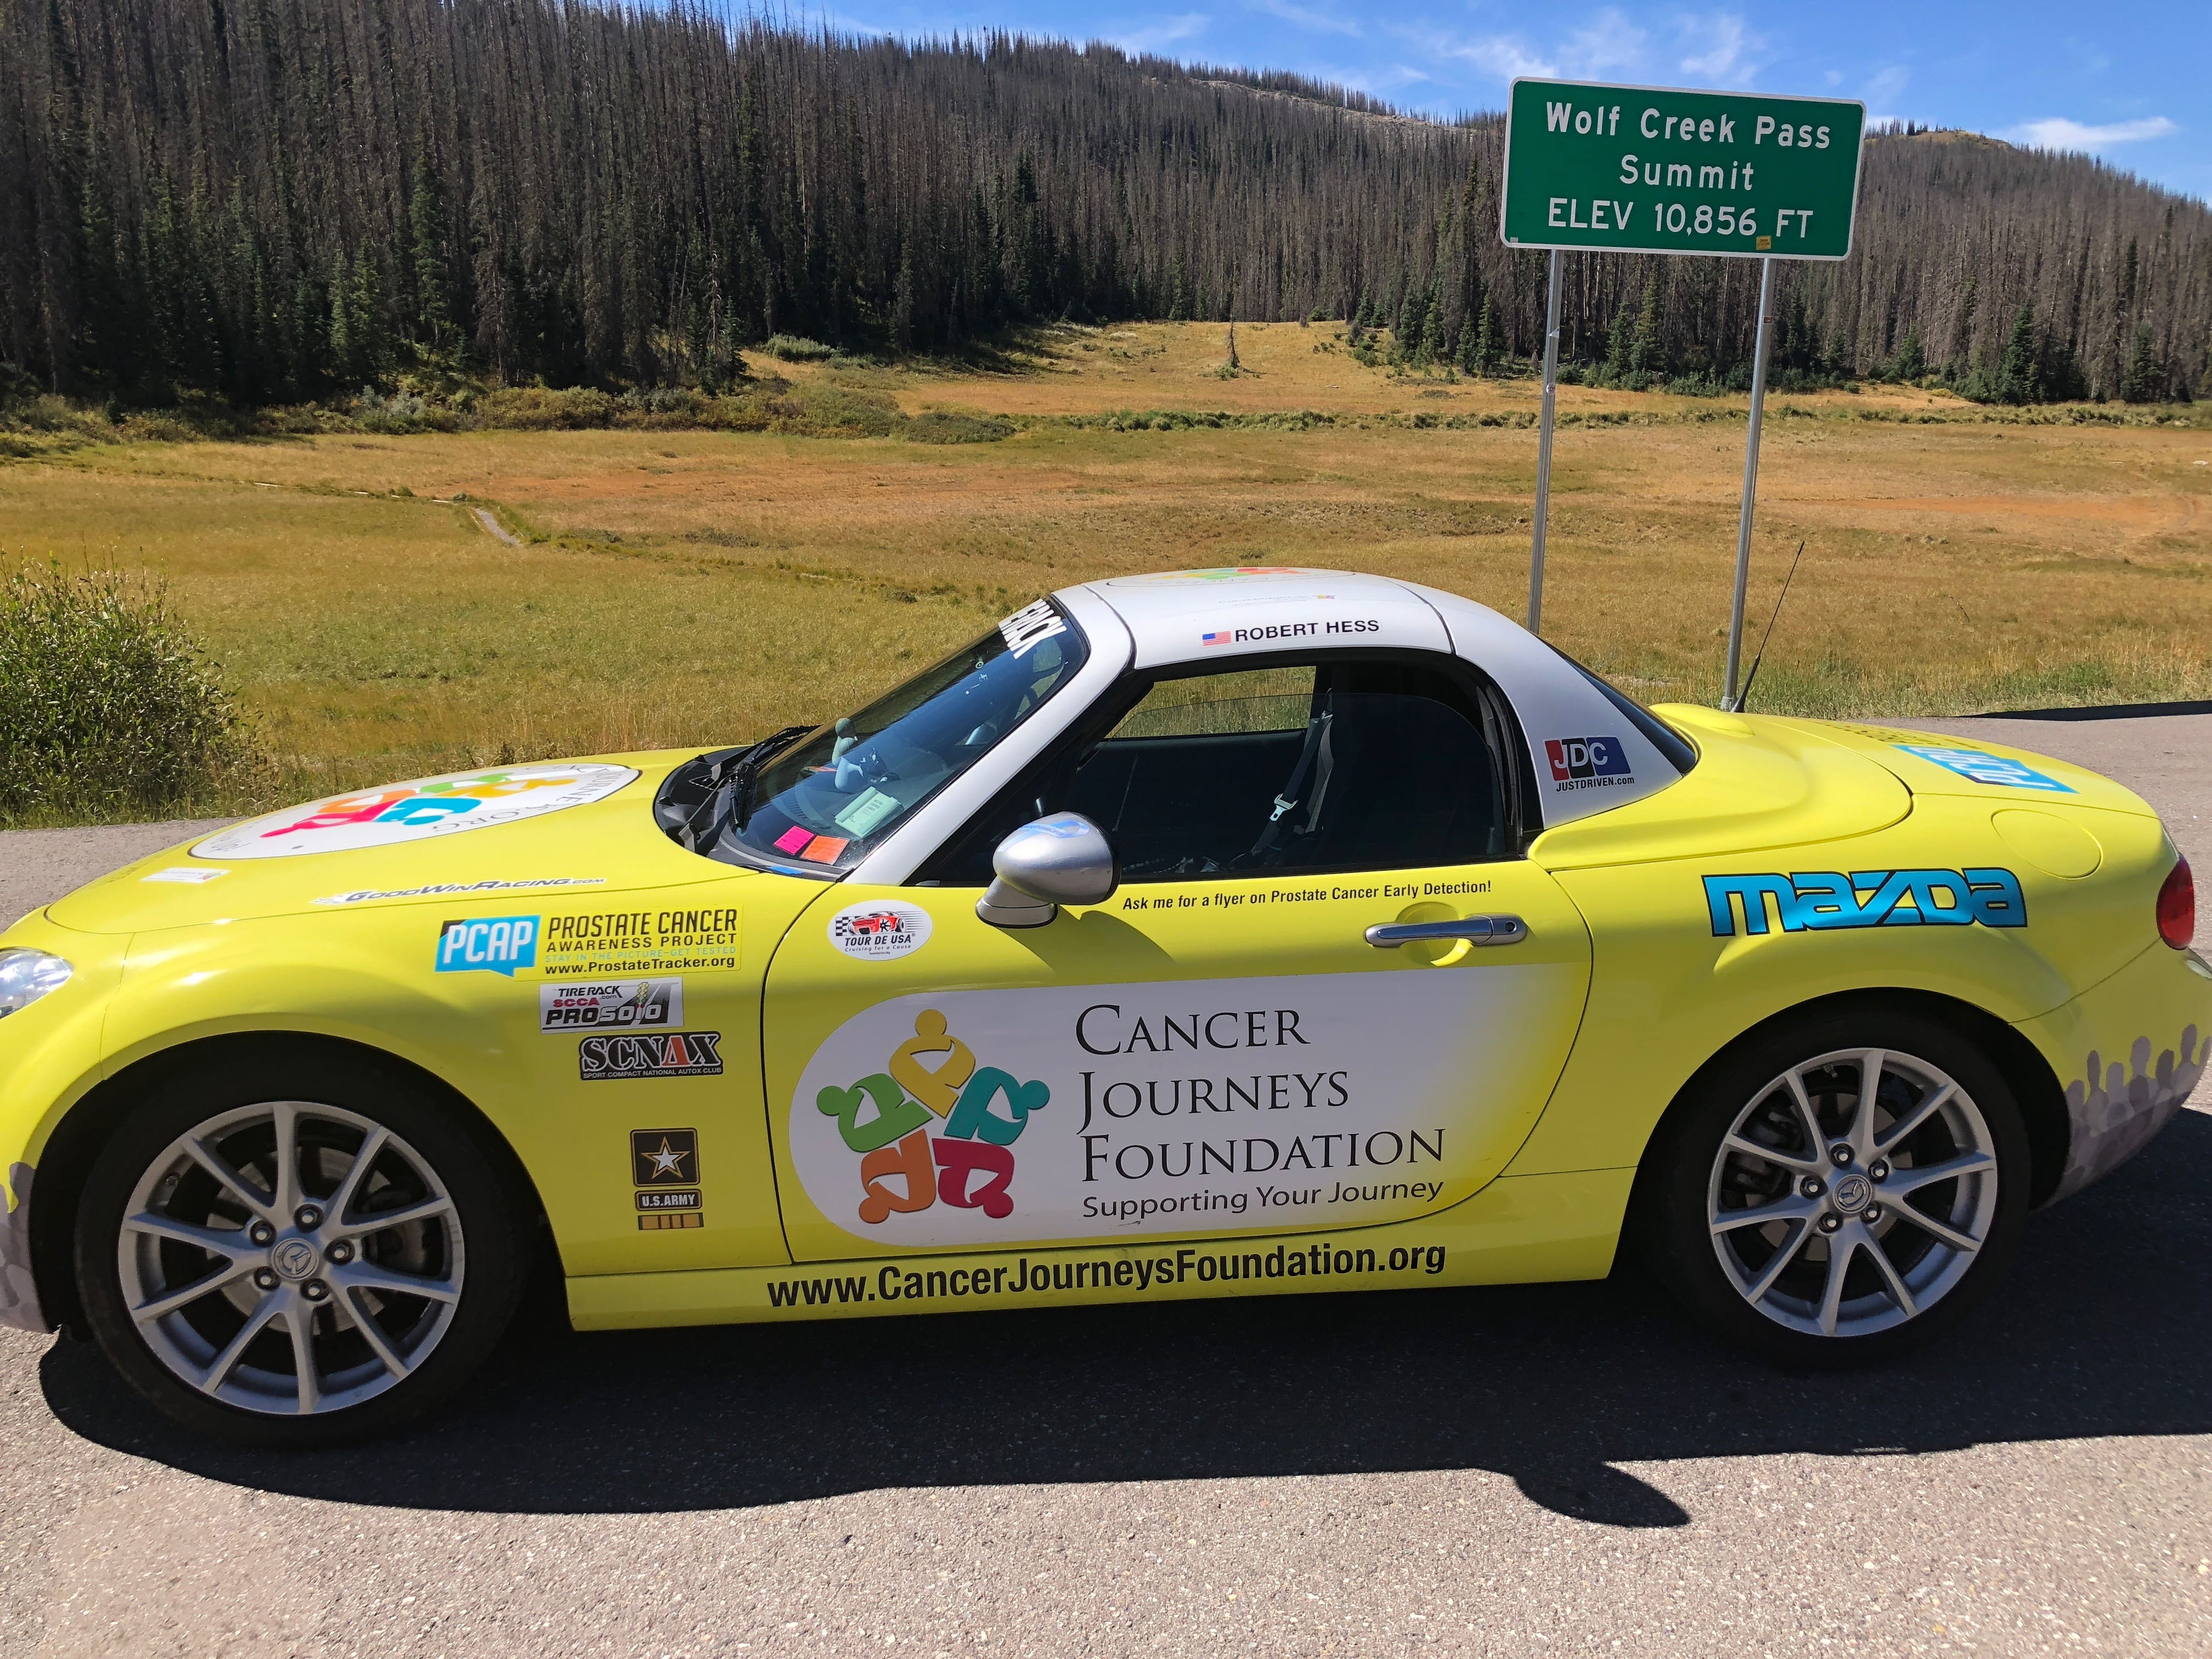 images from 2018 Tour de USA for Prostate Cancer